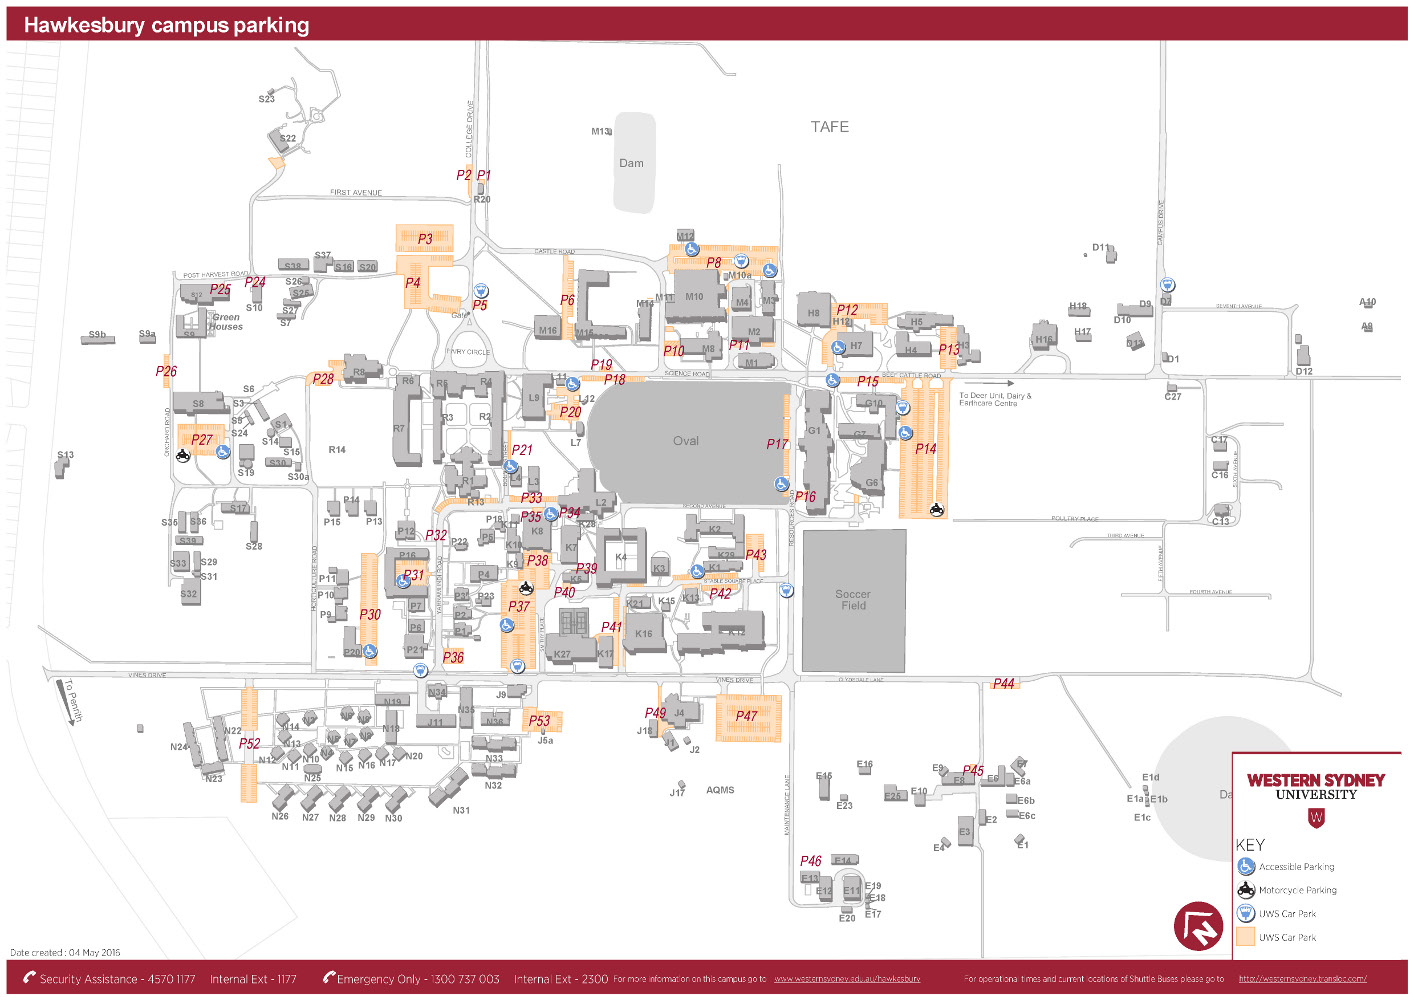 Hawkesbury campus parking map